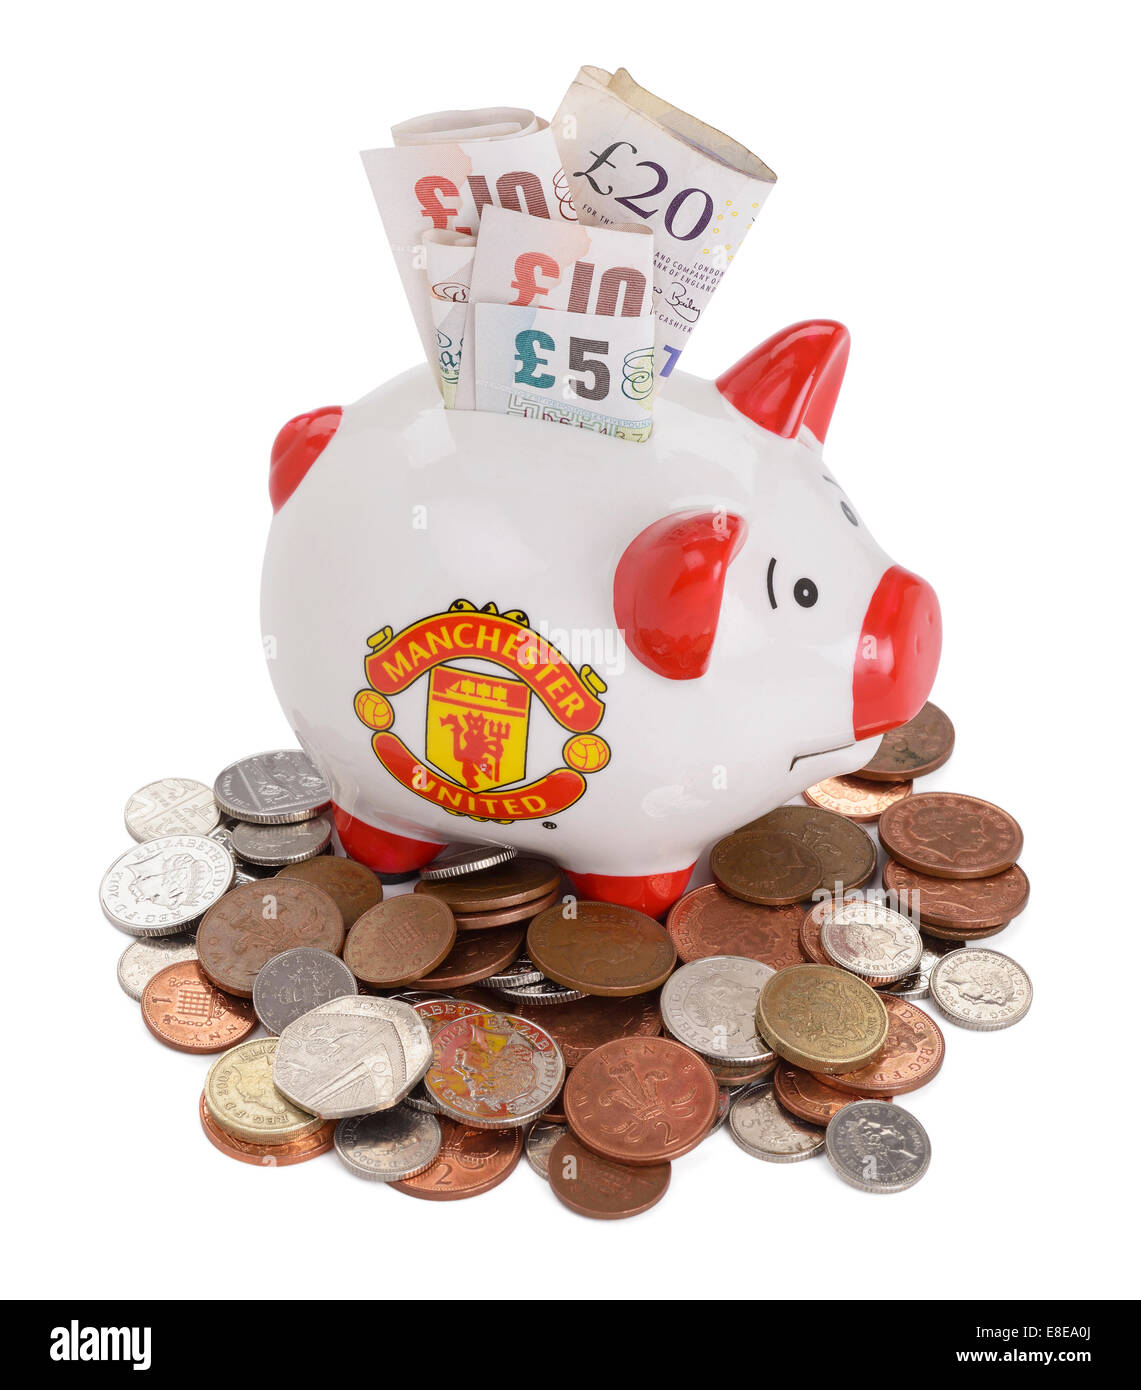 Manchester United Football Club piggy bank - Stock Image